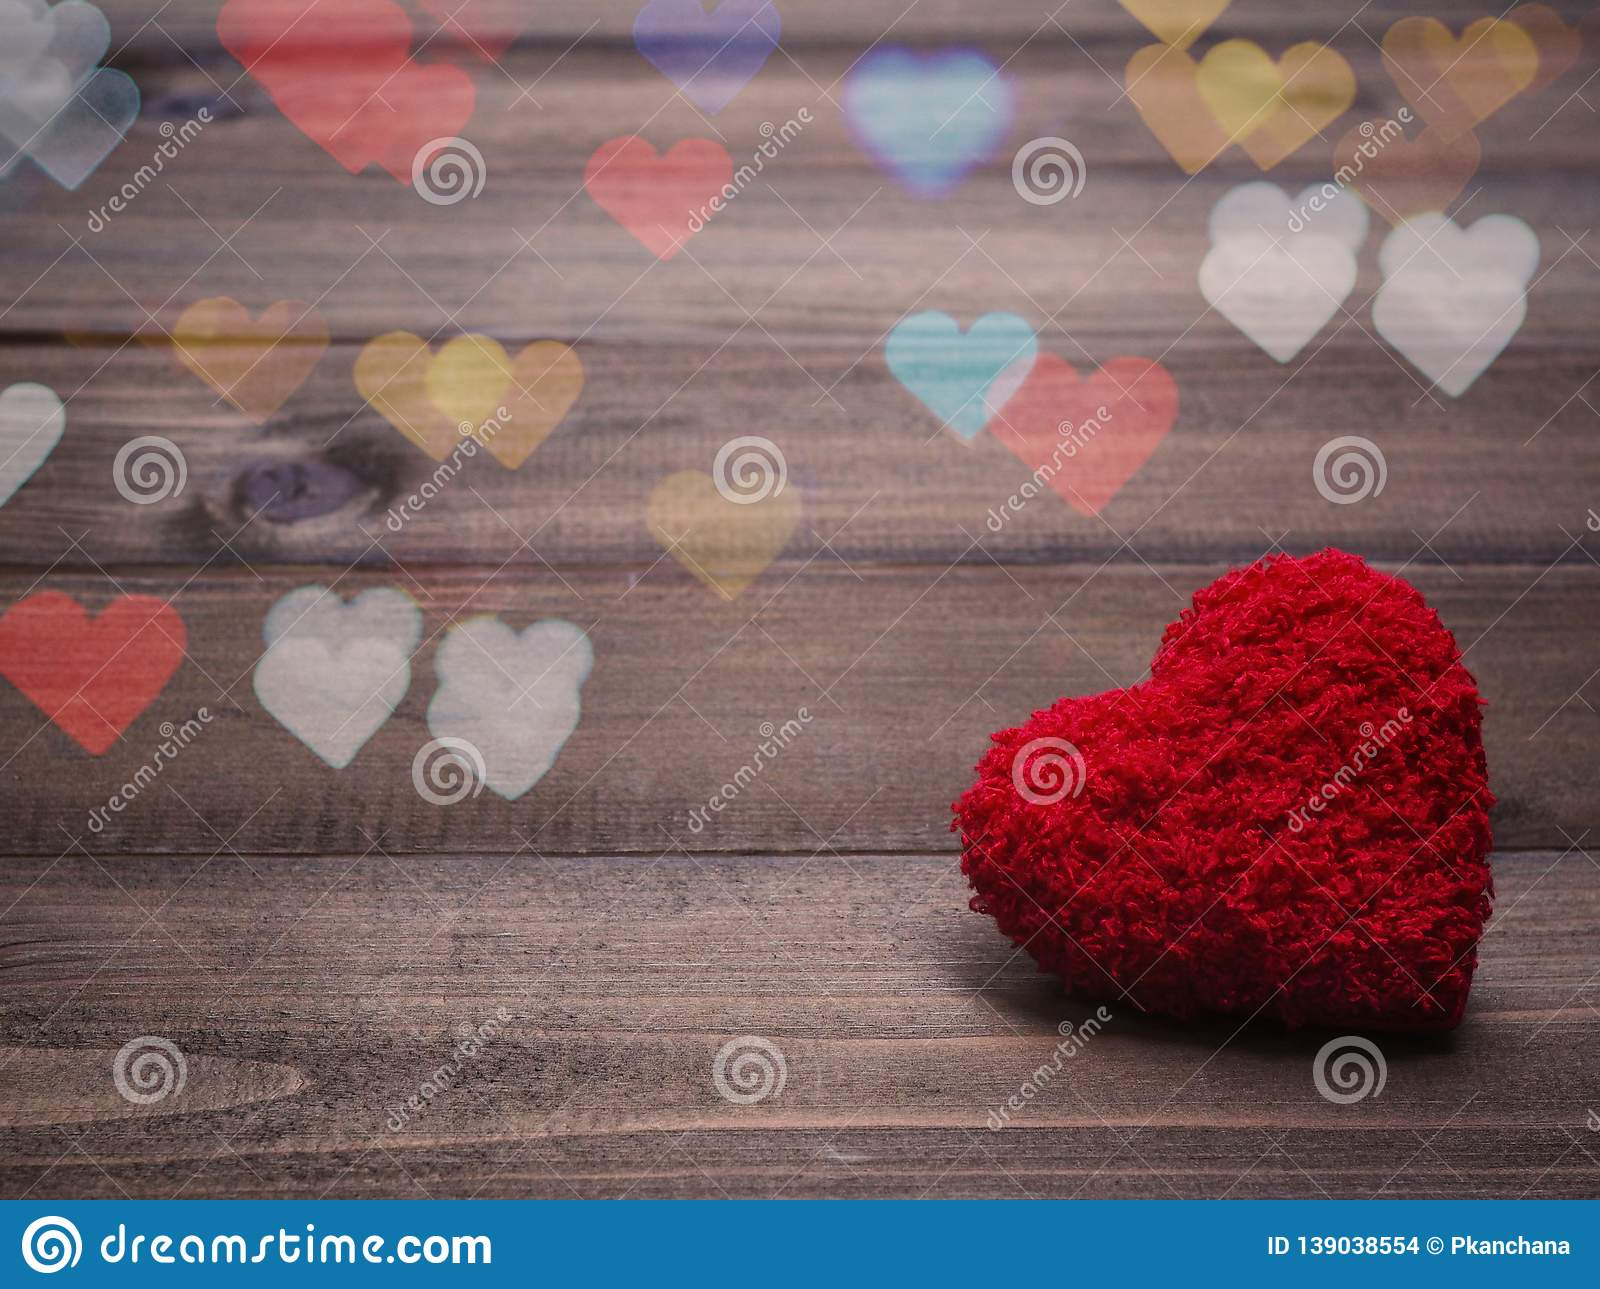 Red cushion heart shape on wood background